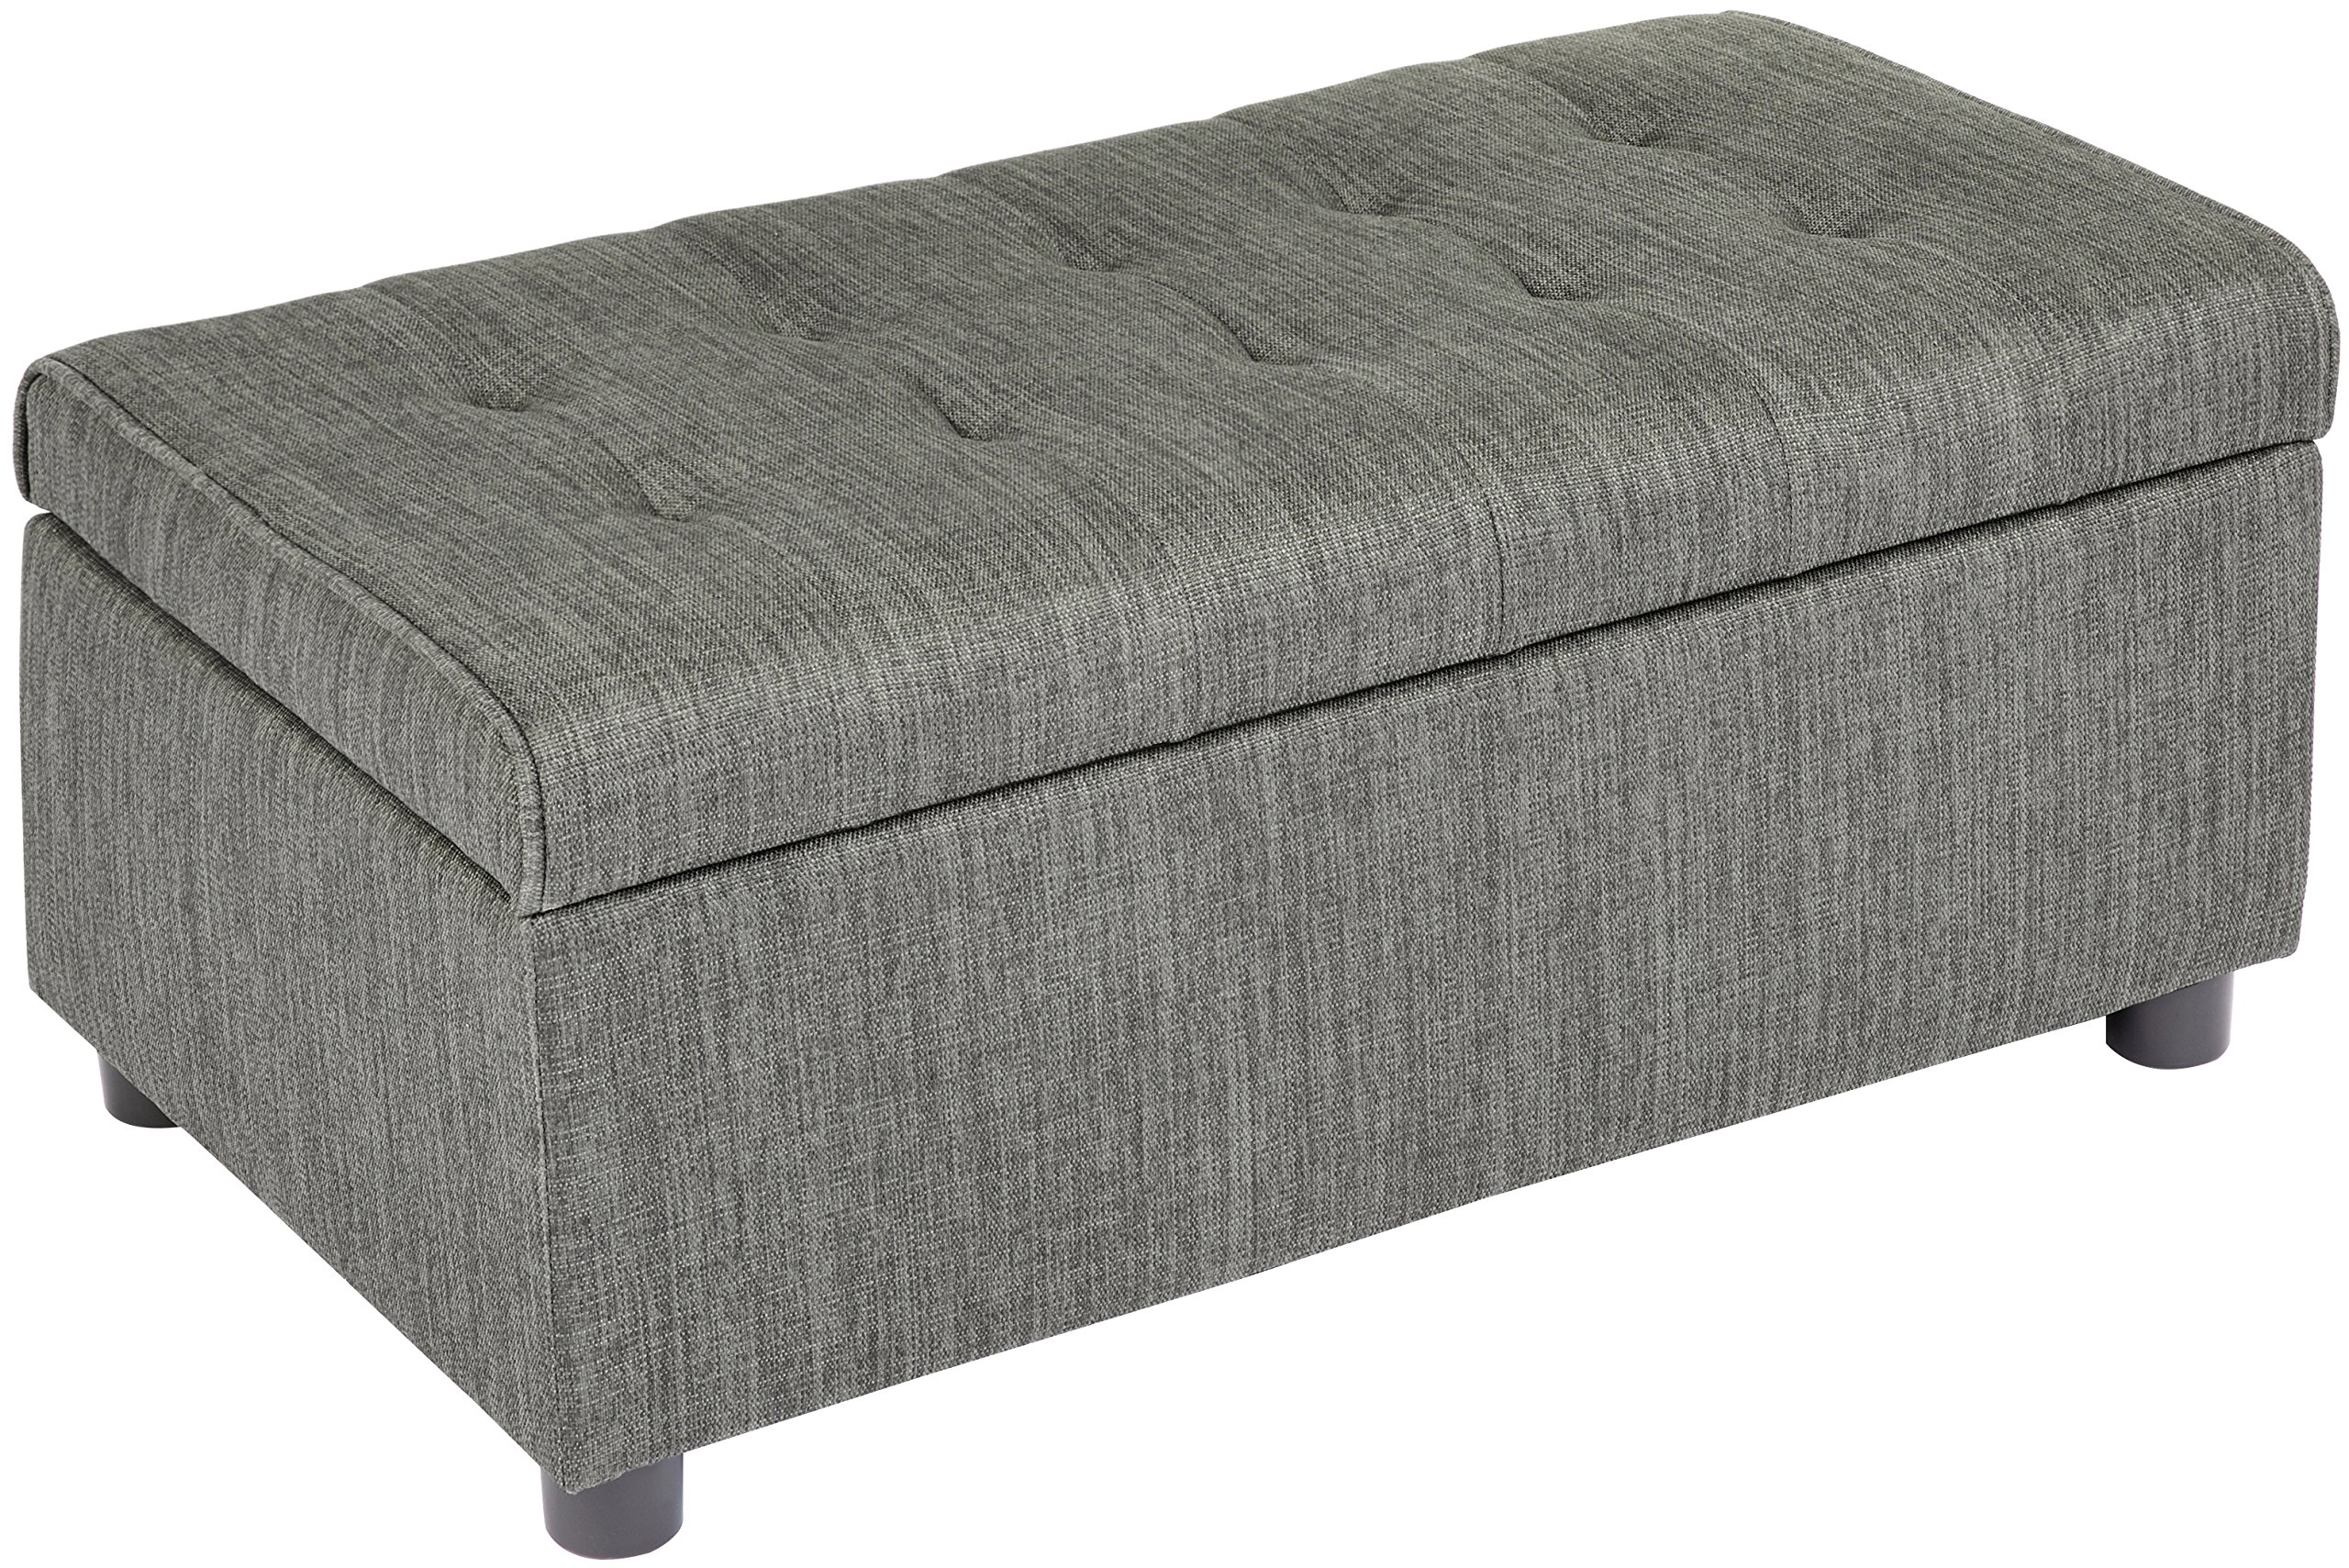 First Hill Arlos Rectangular Fabric Storage Ottoman with Tufted Design - Shadow Gray by First Hill